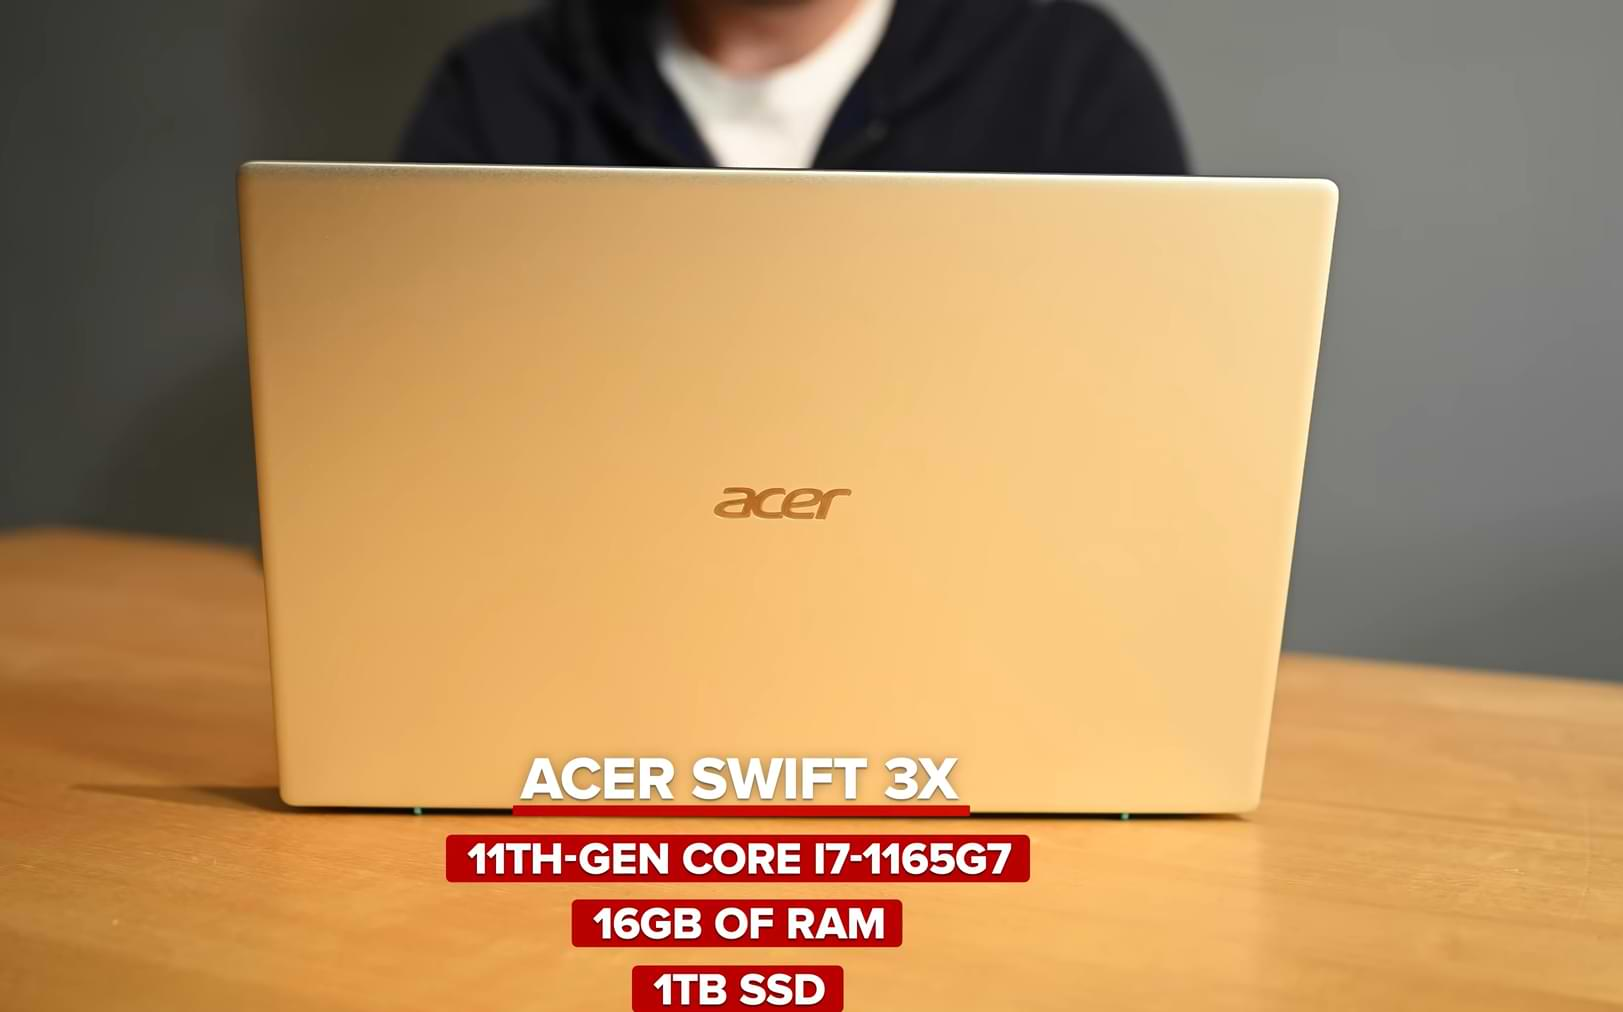 This is the latest Acer 2020 line of laptops with Intel Tiger Lake CPUs